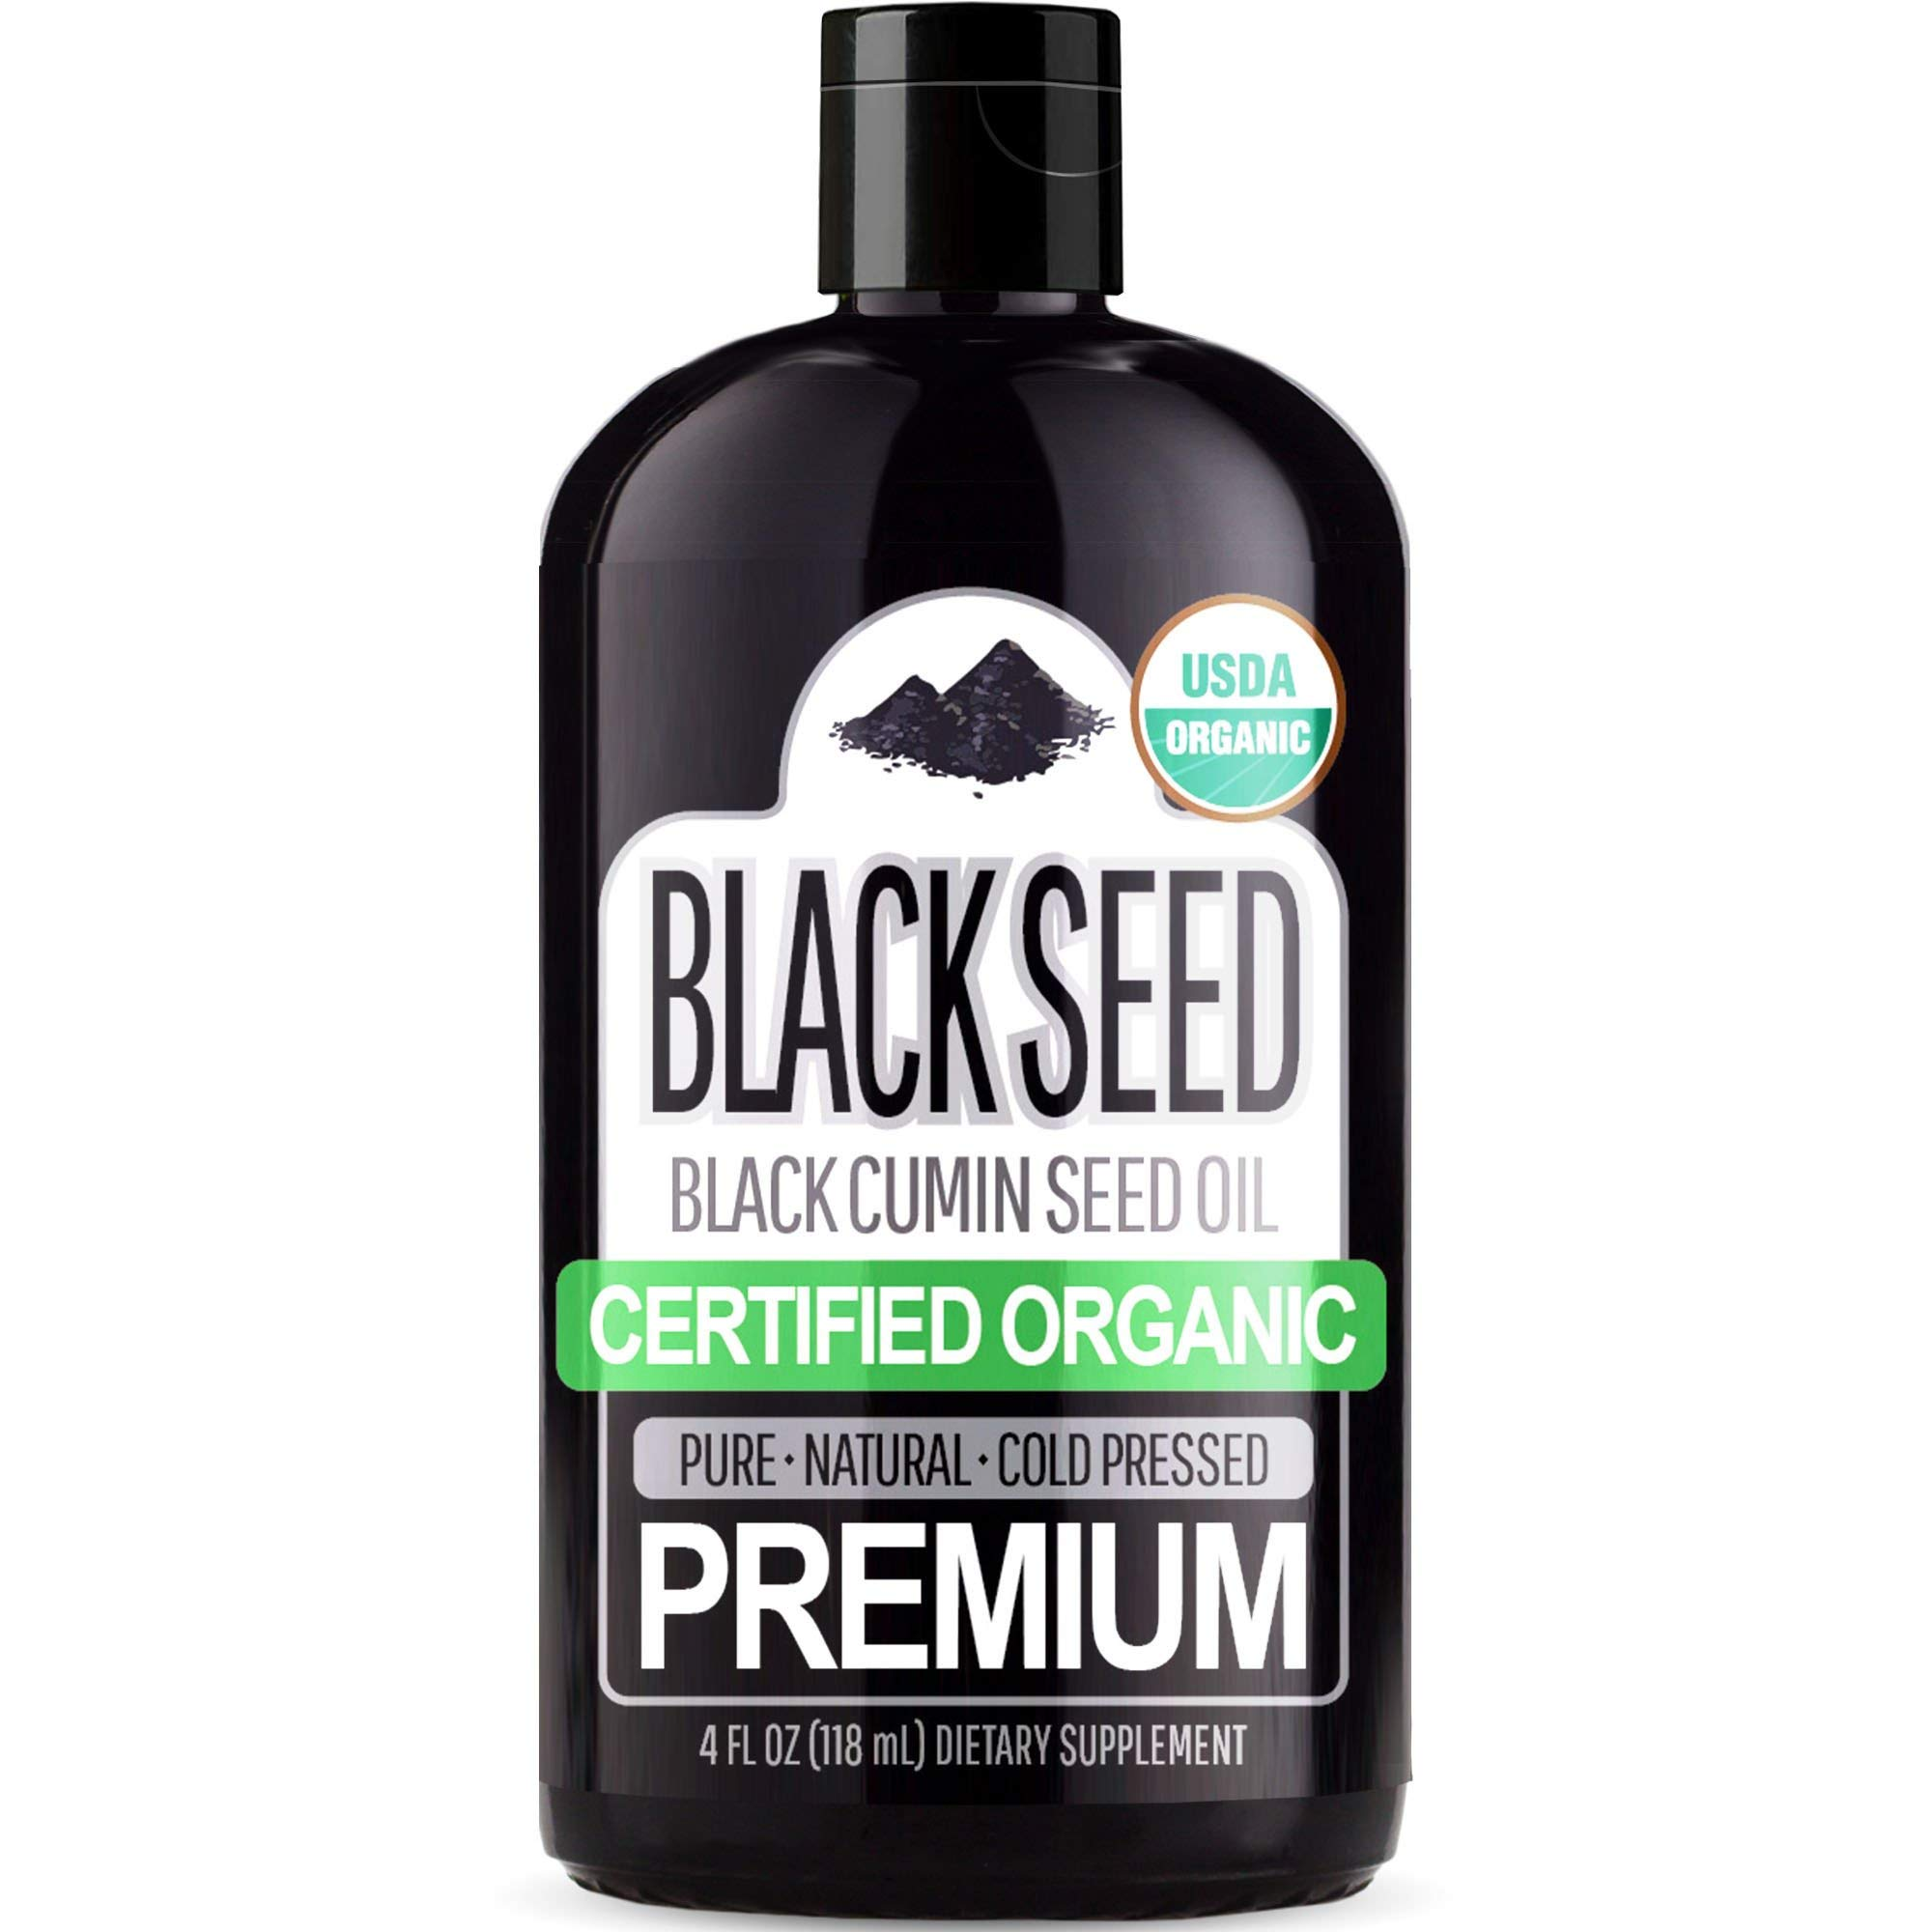 Organic Black Seed Oil (100% Pure & Natural Black Cumin Seed Oil - USDA Certified Organic) Cold Pressed, Premium Quality Free of Toxins, Heavy Metals, Pesticides, and Other Harmful Chemicals - 4oz Bot